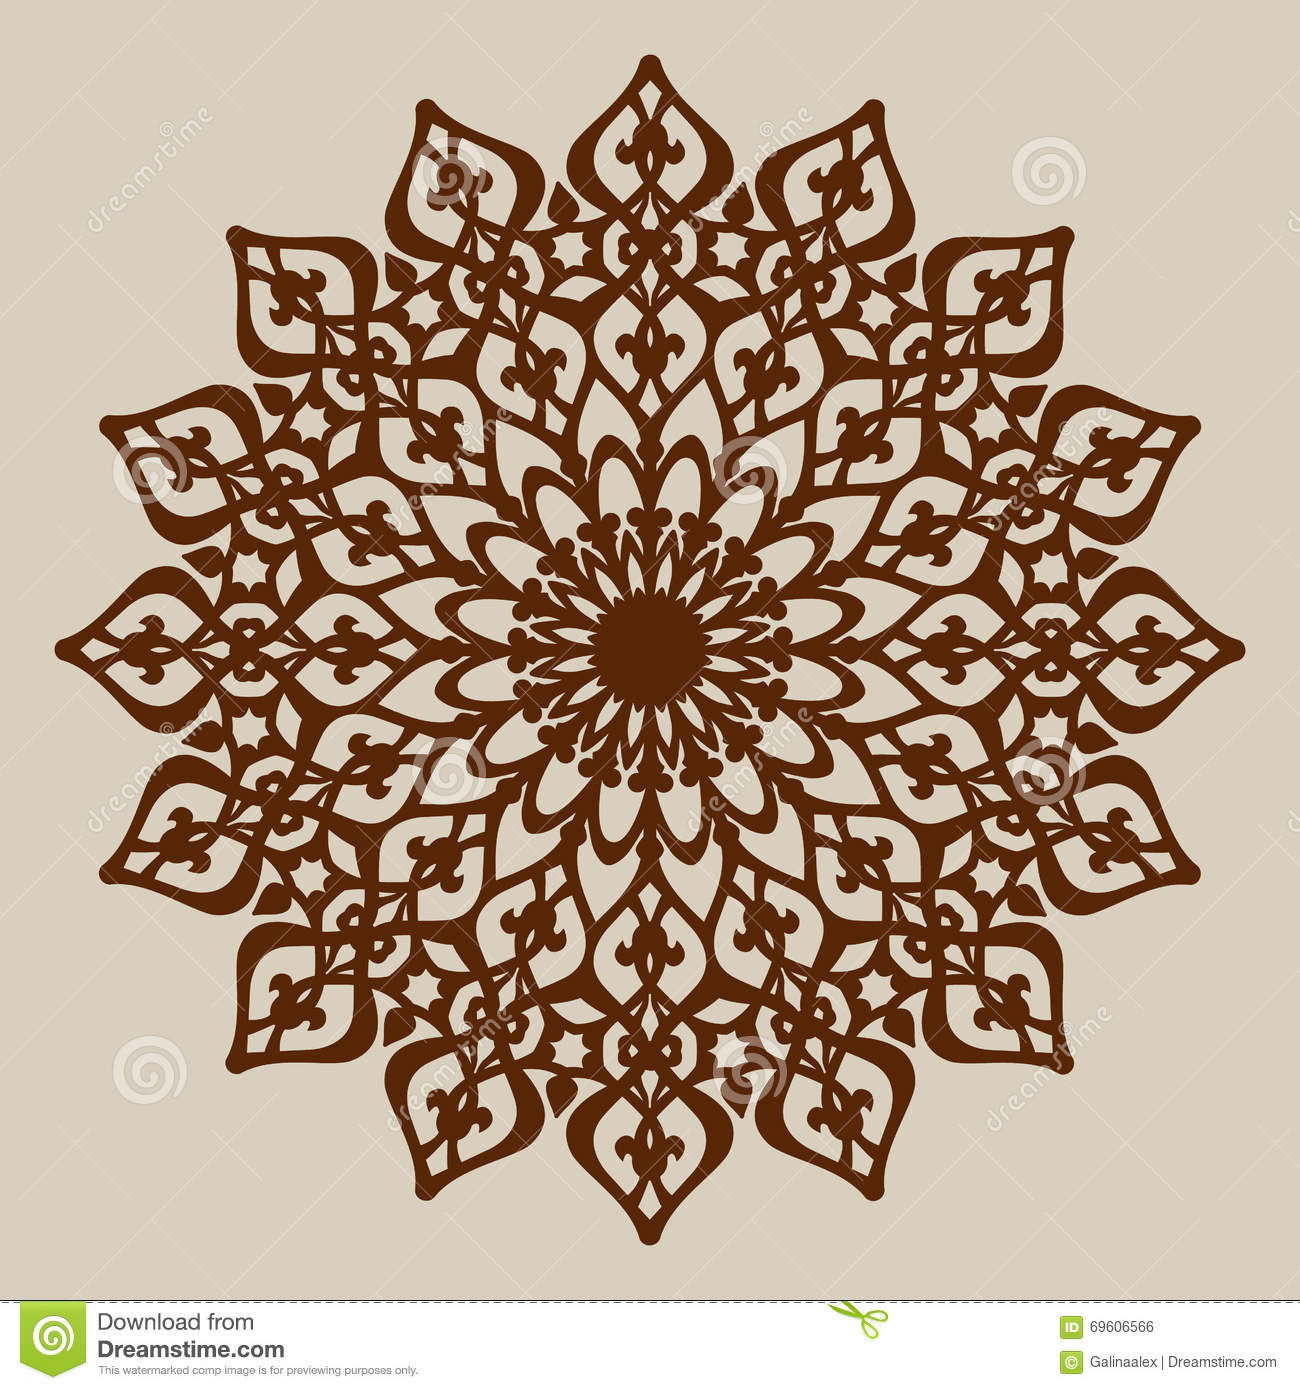 laser engraver templates the template mandala pattern for decorative rosette stock